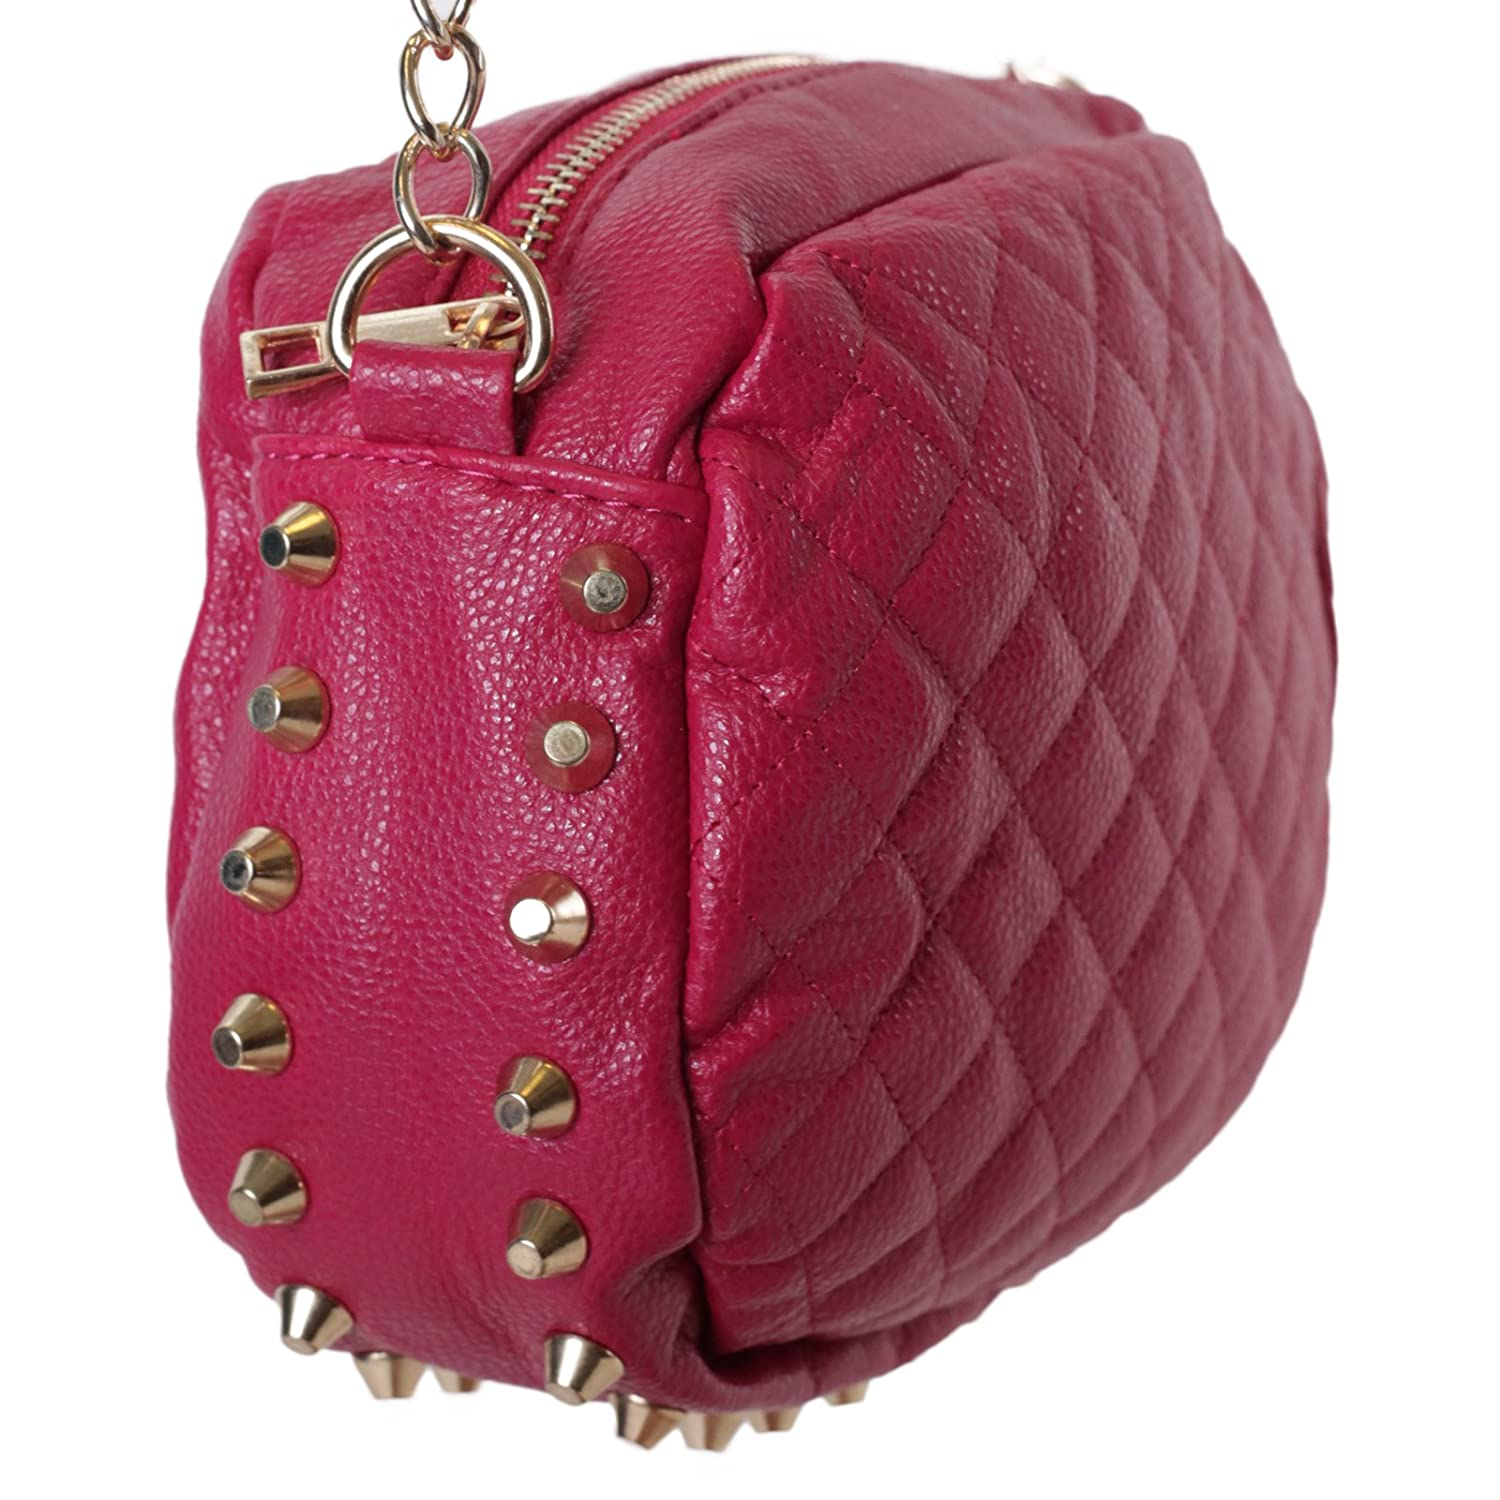 Leather quilted handbags and purses - Oval Quilted Faux Leather Crossbody Chain Strap Purse Bag W Gold Studs Fuchsia Handbags Amazon Com